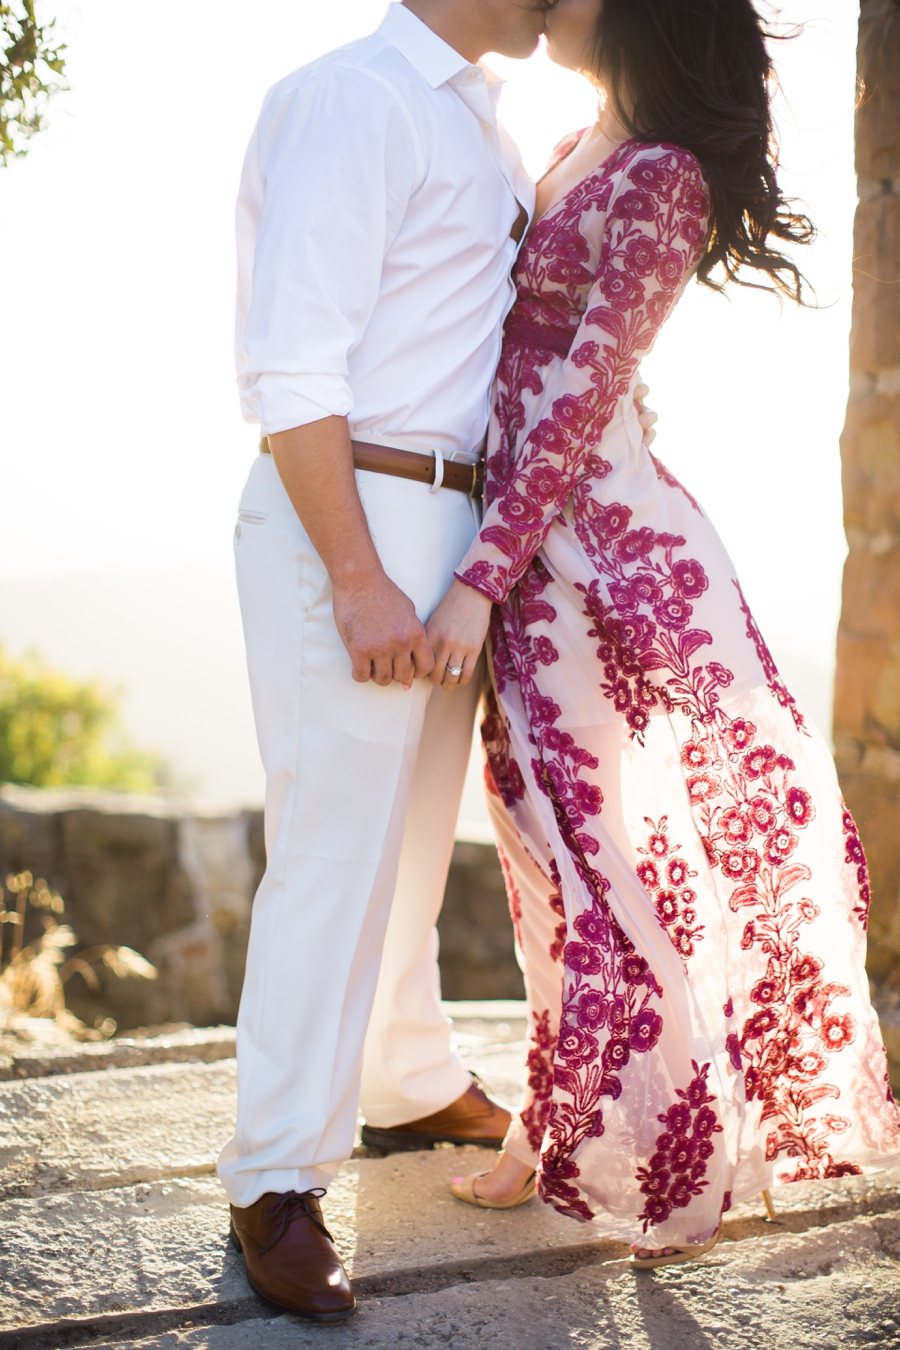 Taylor_Kinzie_Photography_Santa_Barbara_Engagement_Photography_0112